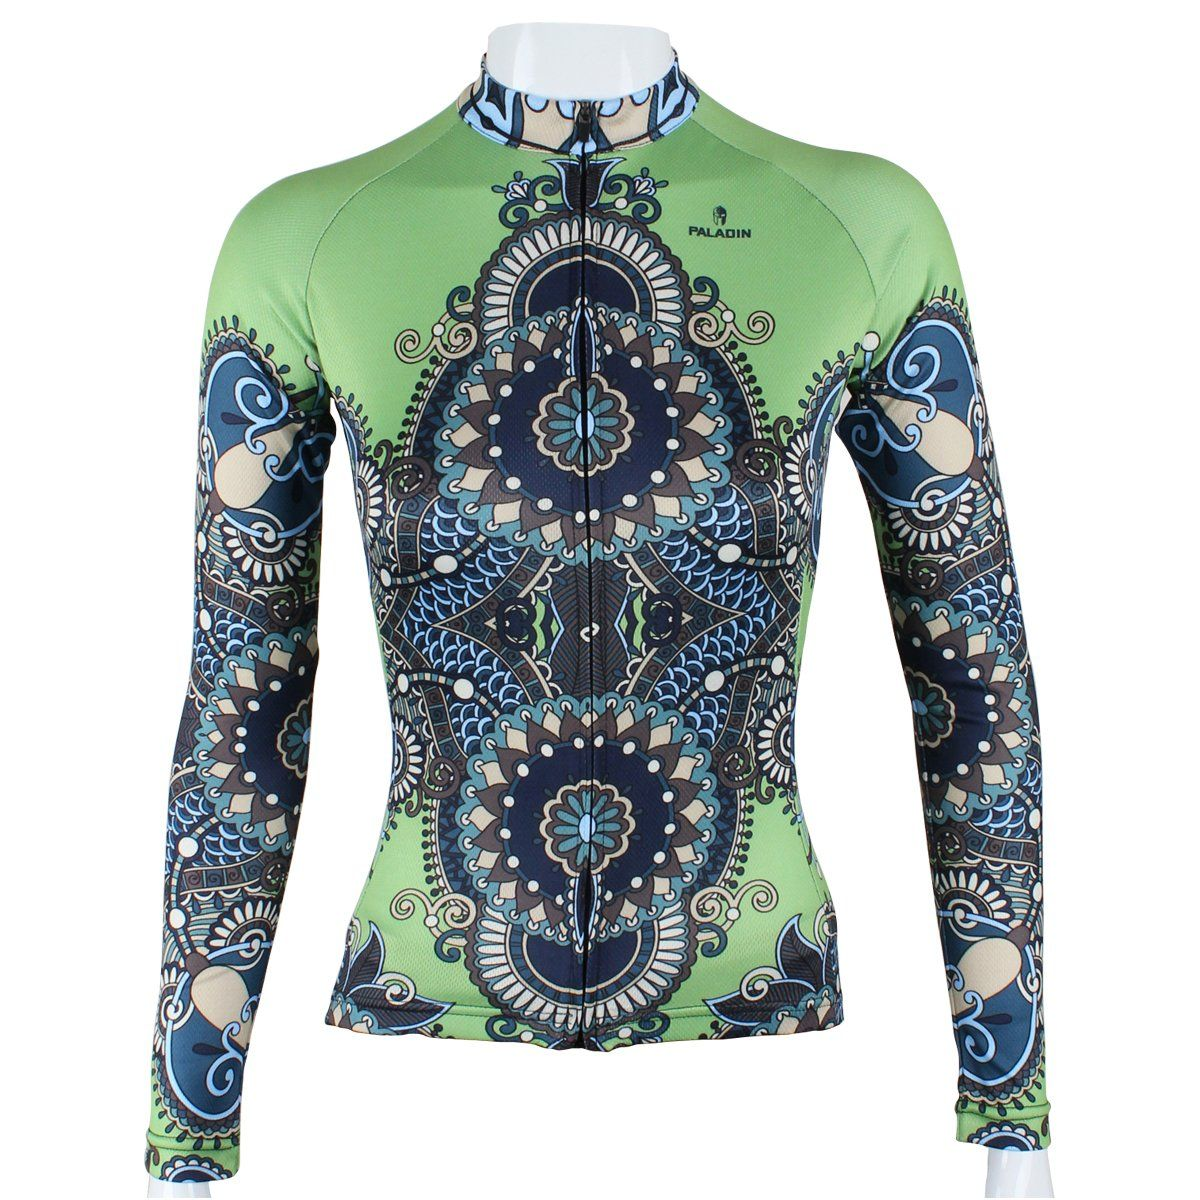 82aa4e35d Paladin Cycling Jersey Long Sleeve Women Armor Pattern Bike Shirts Size M  Green. Paladin bike